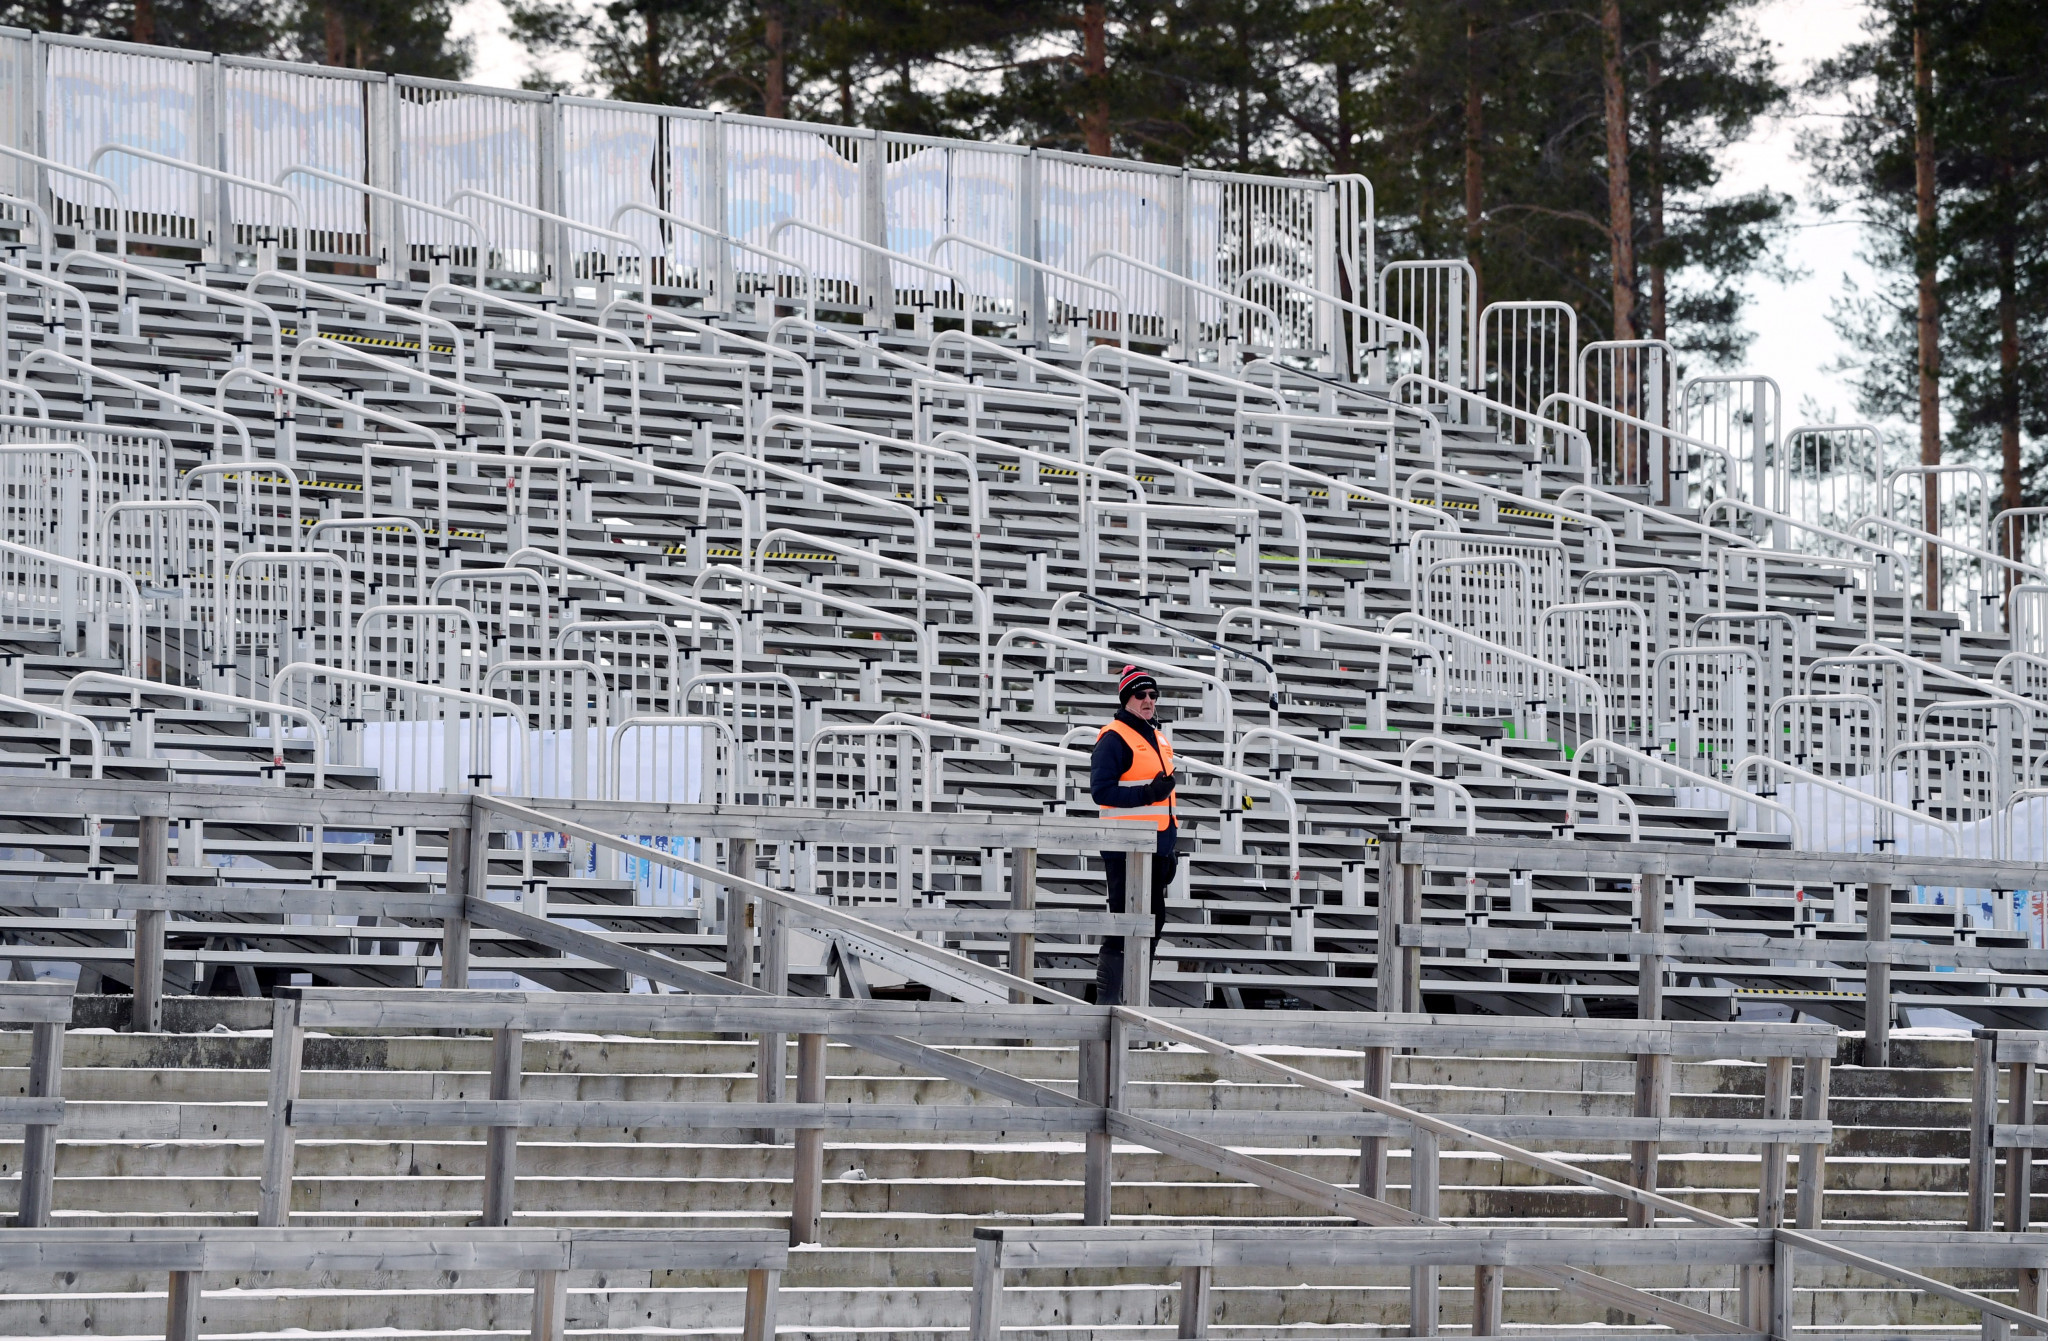 Restricted numbers of fans could attend IBU World Cup in Kontiolahti